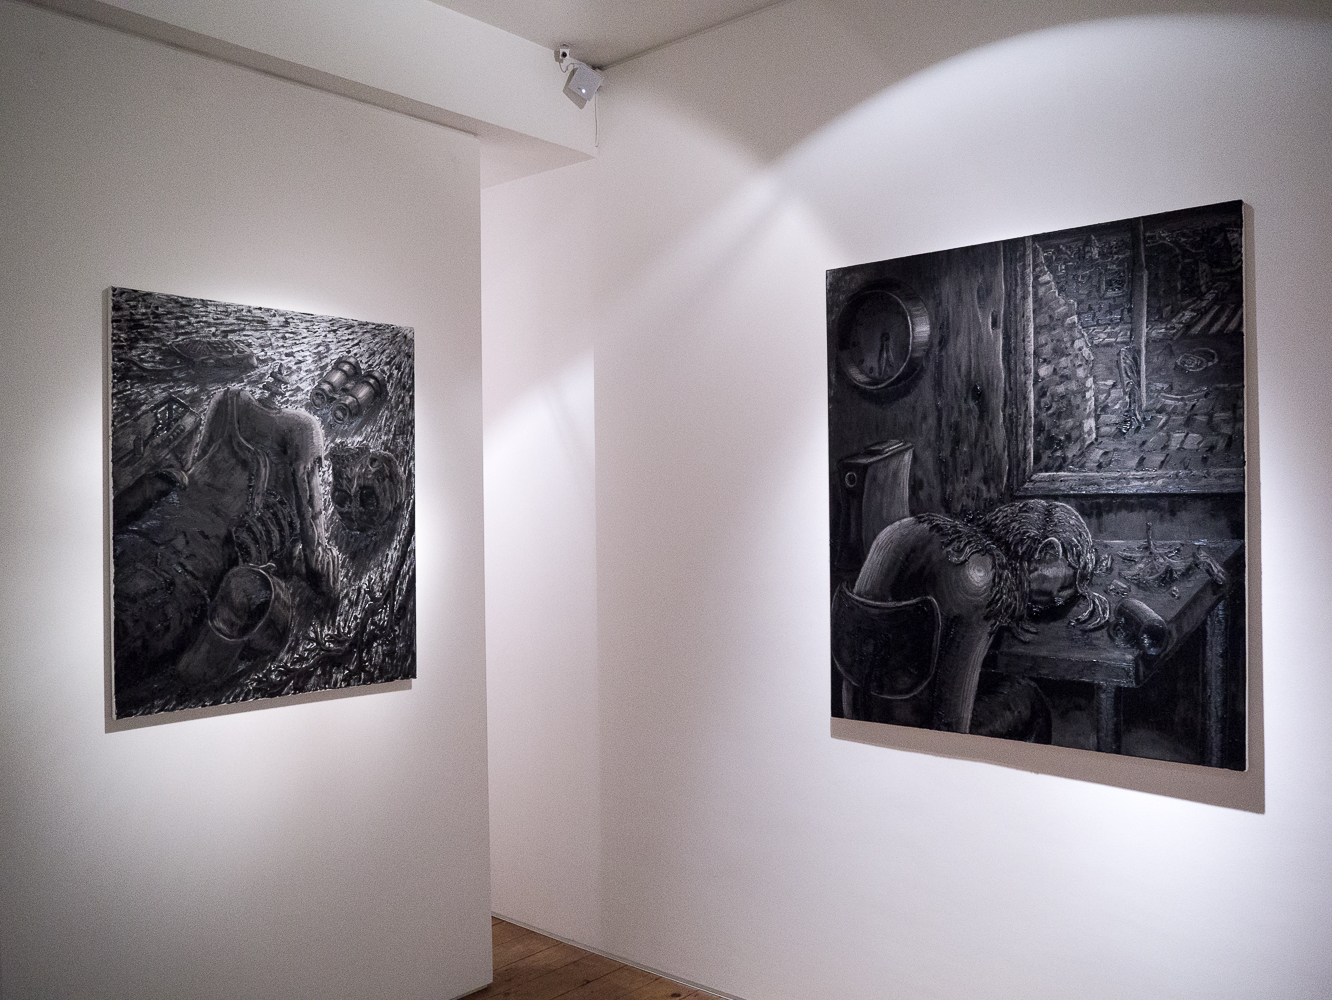 Willem Weismann Moonblinking solo exhibition at CABIN gallery curate by Joe Madeira